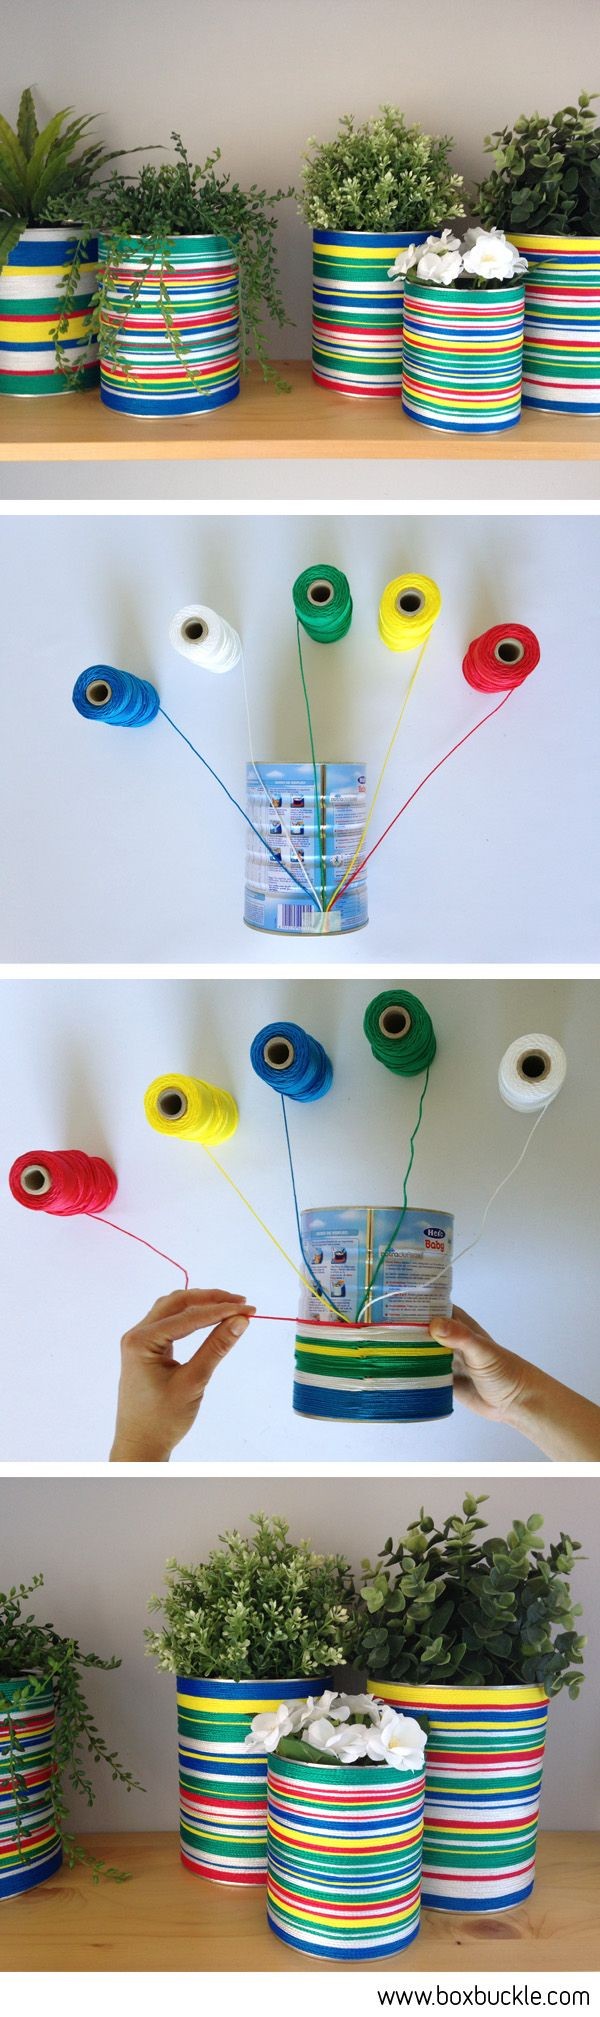 DIY TUTORIAL, bote de leche infantil forrado con cordeles de colores (idea de DAMA design) colored tin can planters with strings #diy #diyformoms #recicla #reutiliza #botedelecheinfantil #tincan